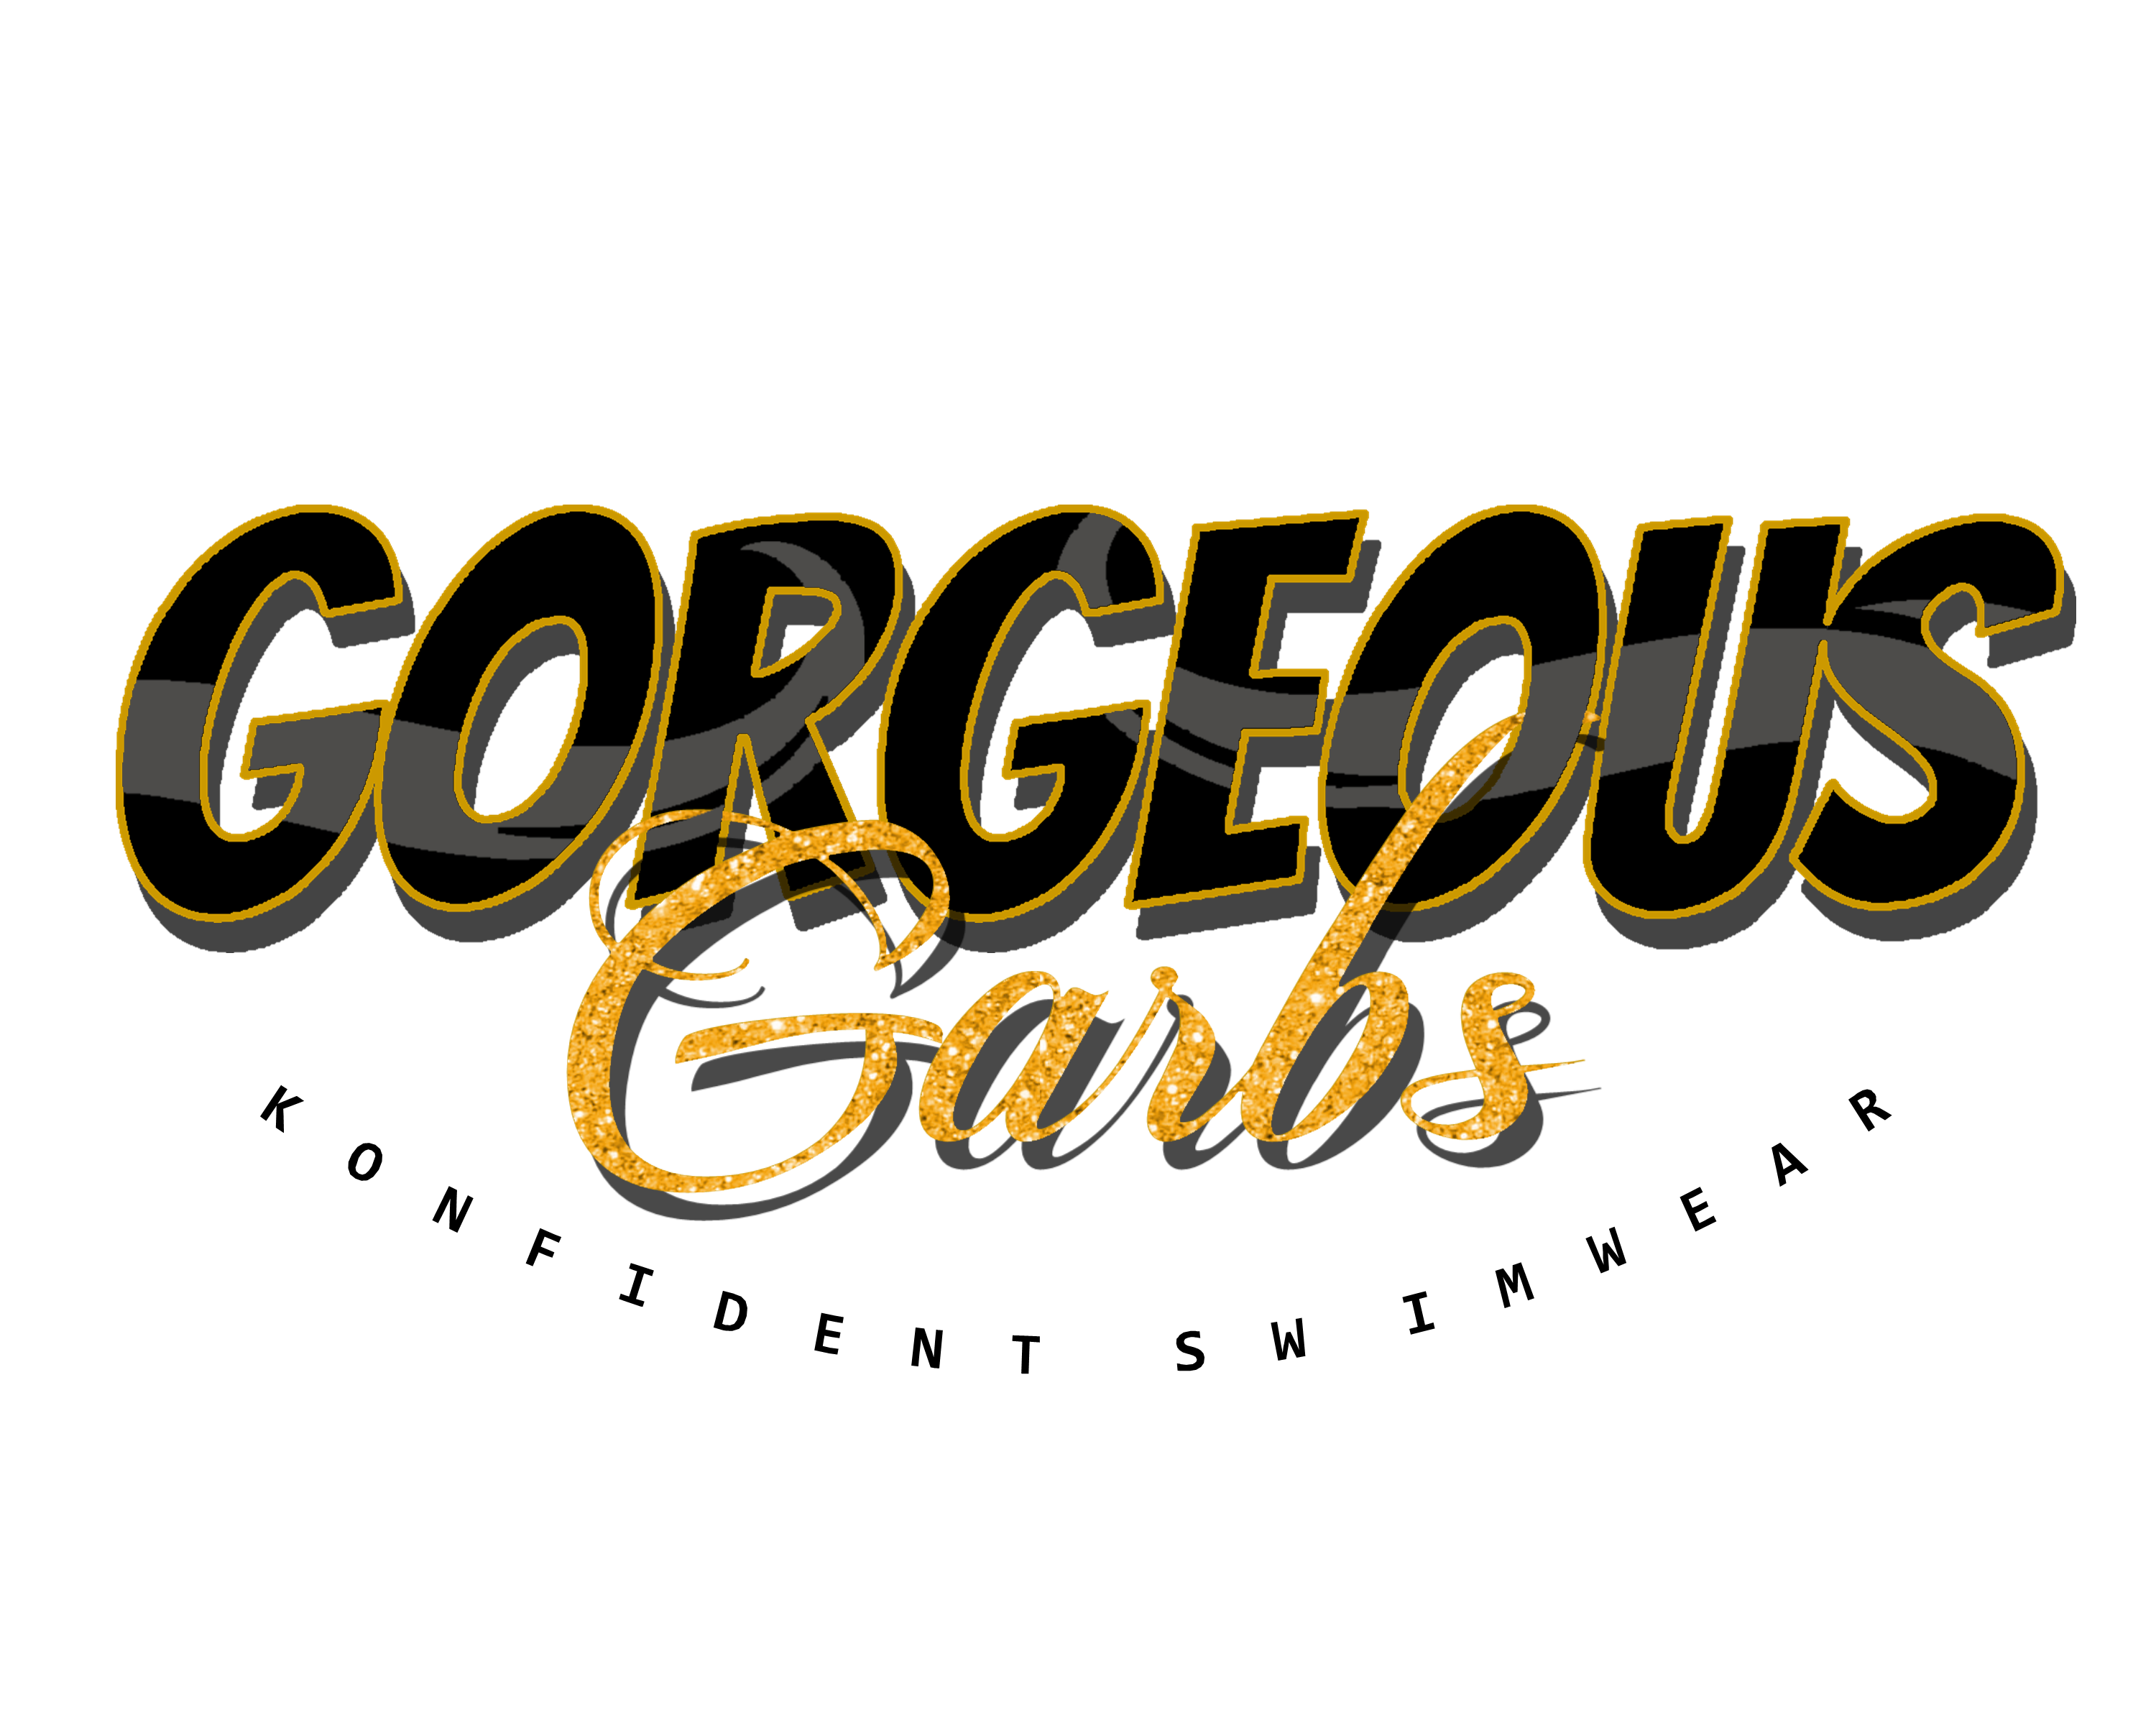 """Actress and Publicist Chrissy Haynie Announces Relaunch of Her Boutique """"Gorgeous Garbs"""" Online 1"""